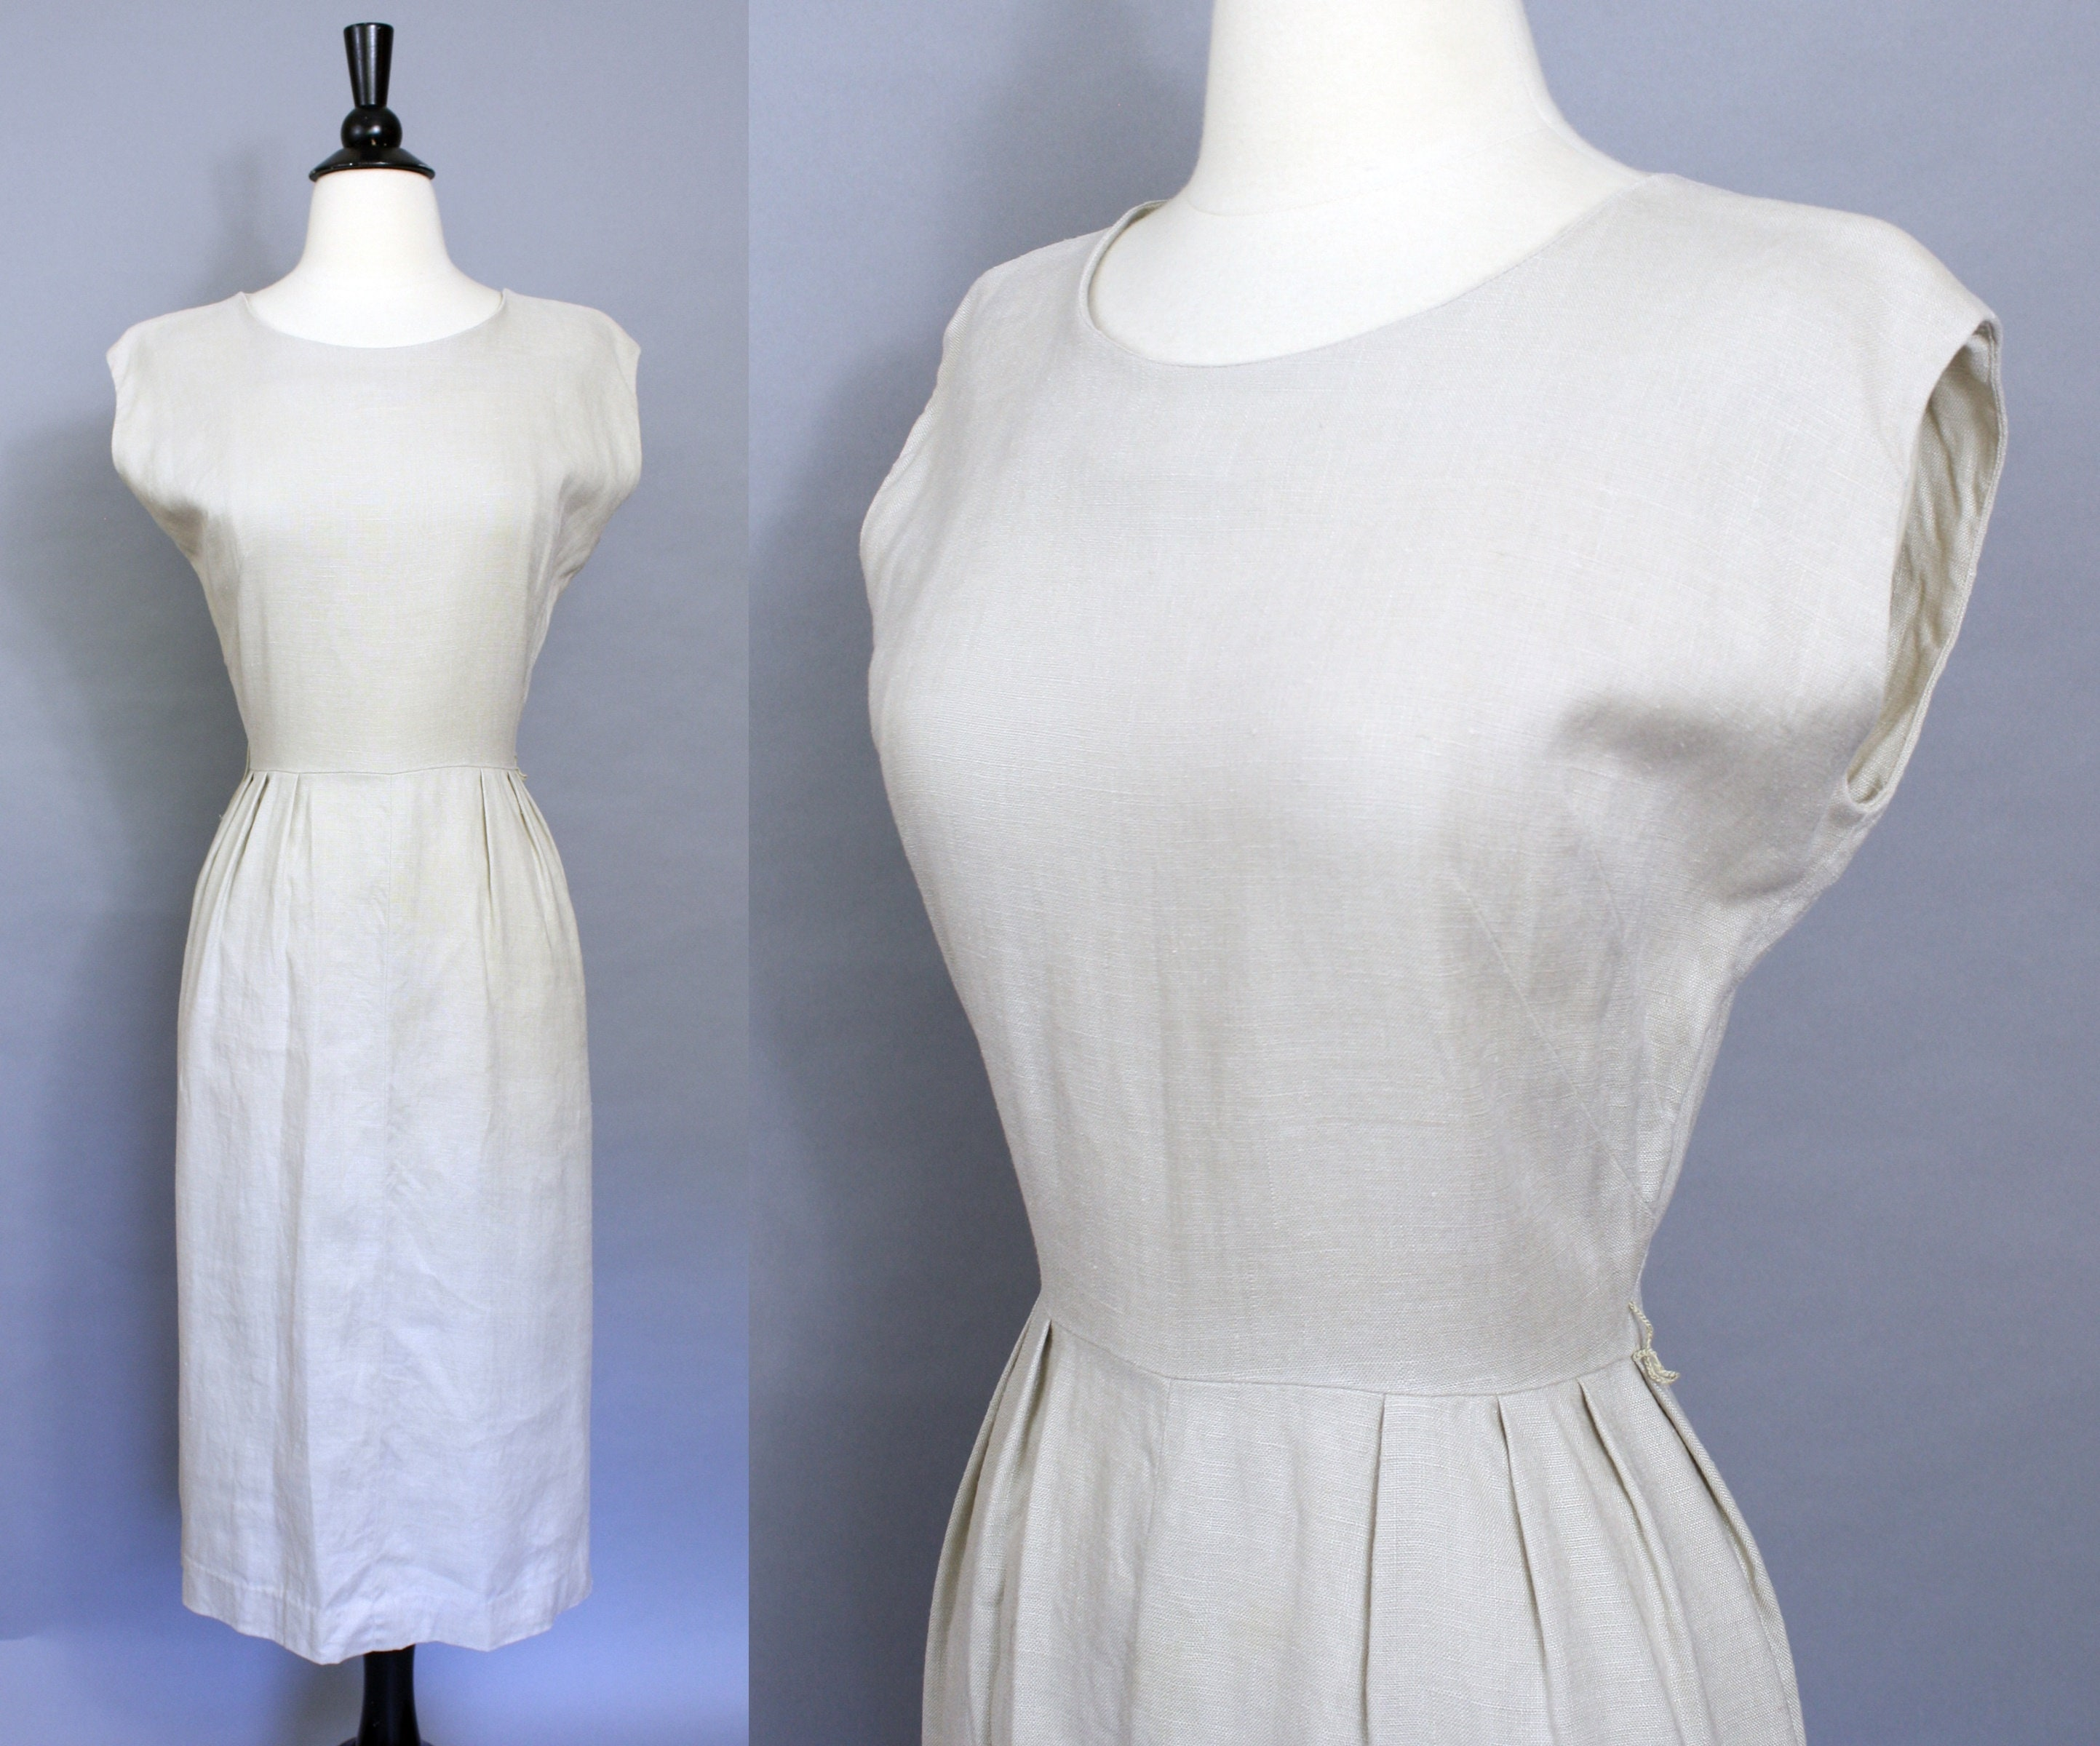 ffa2d2918ac vintage 50s natural rayon pencil dress 1950s beige oatmeal